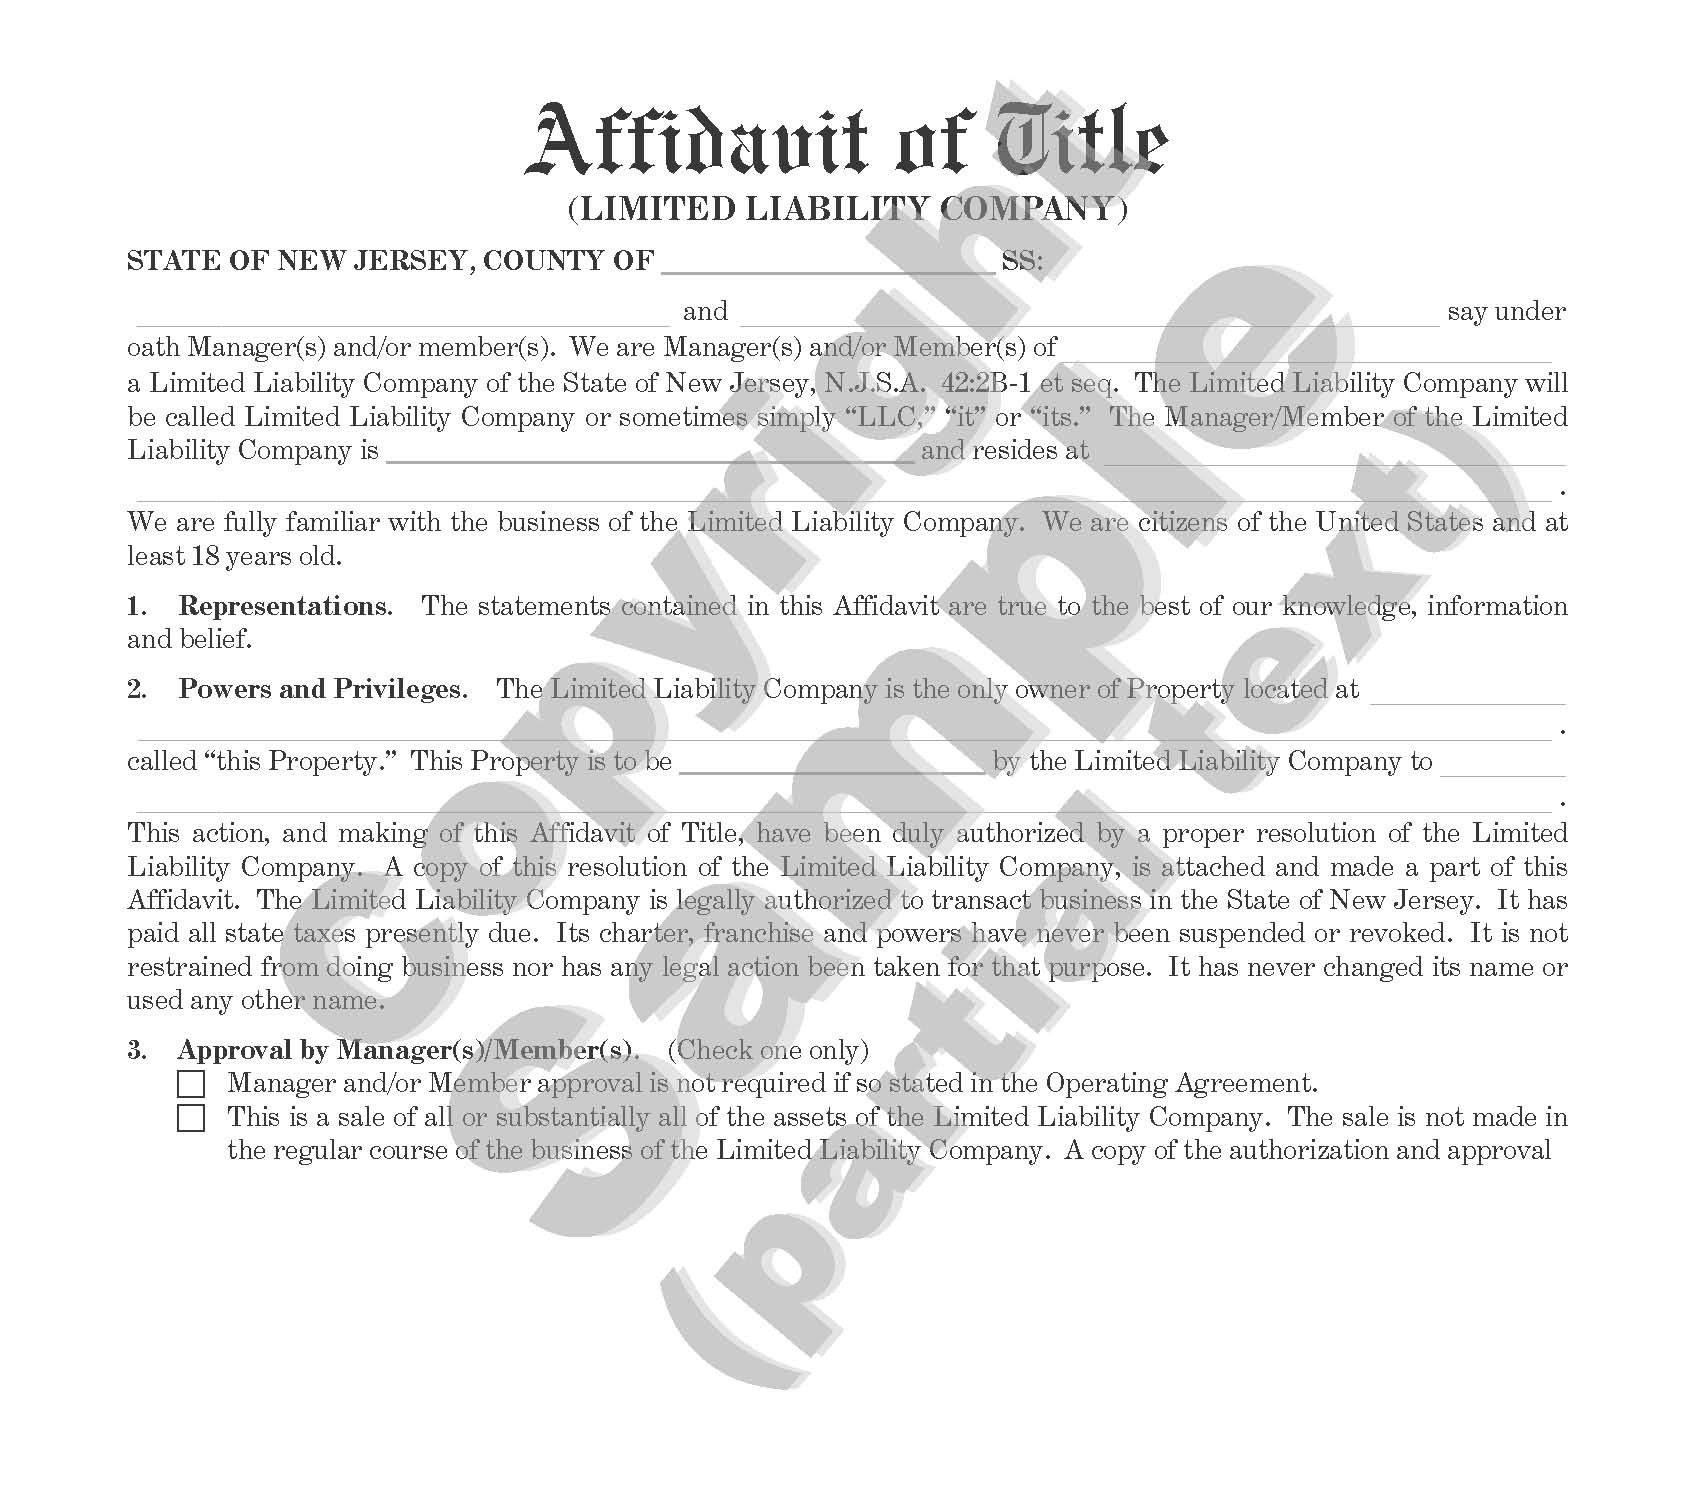 Affidavit of Title Limited Liability Corporation - For Sale or Mortgage of Property - Plain Language